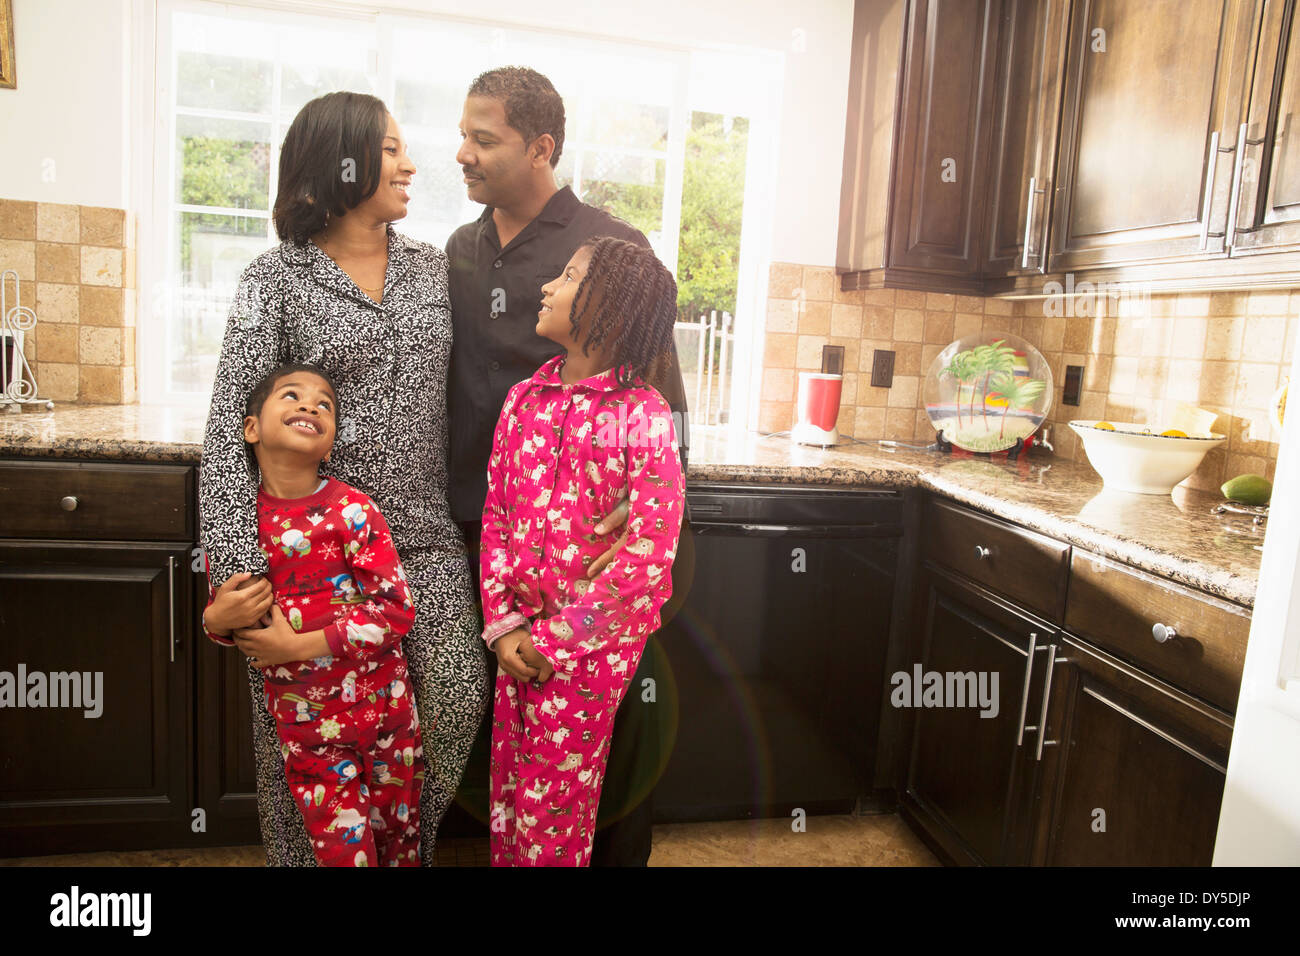 Mid adult couple with son and daughter in kitchen Stock Photo